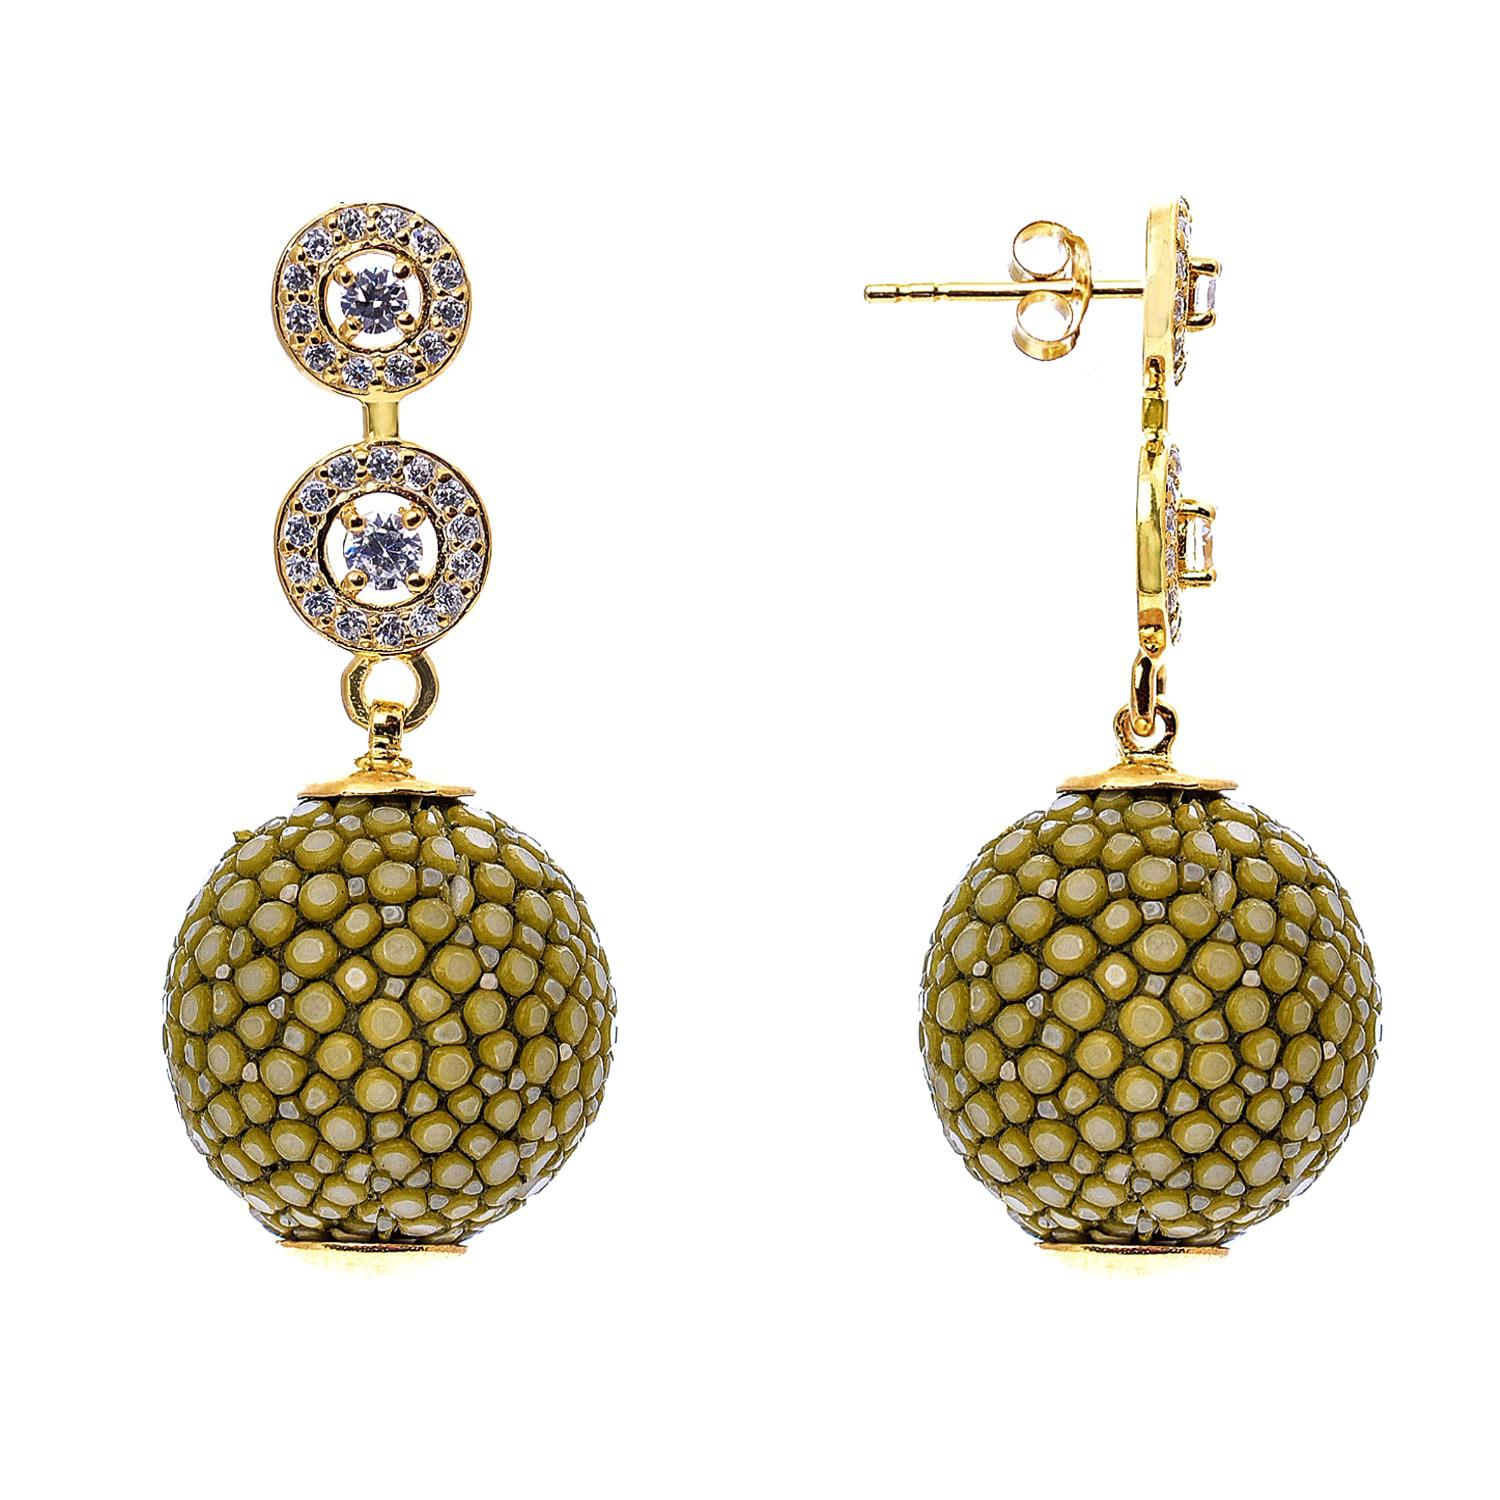 Latelita London Stingray Ball Earring Ocean Xh73uEy25m